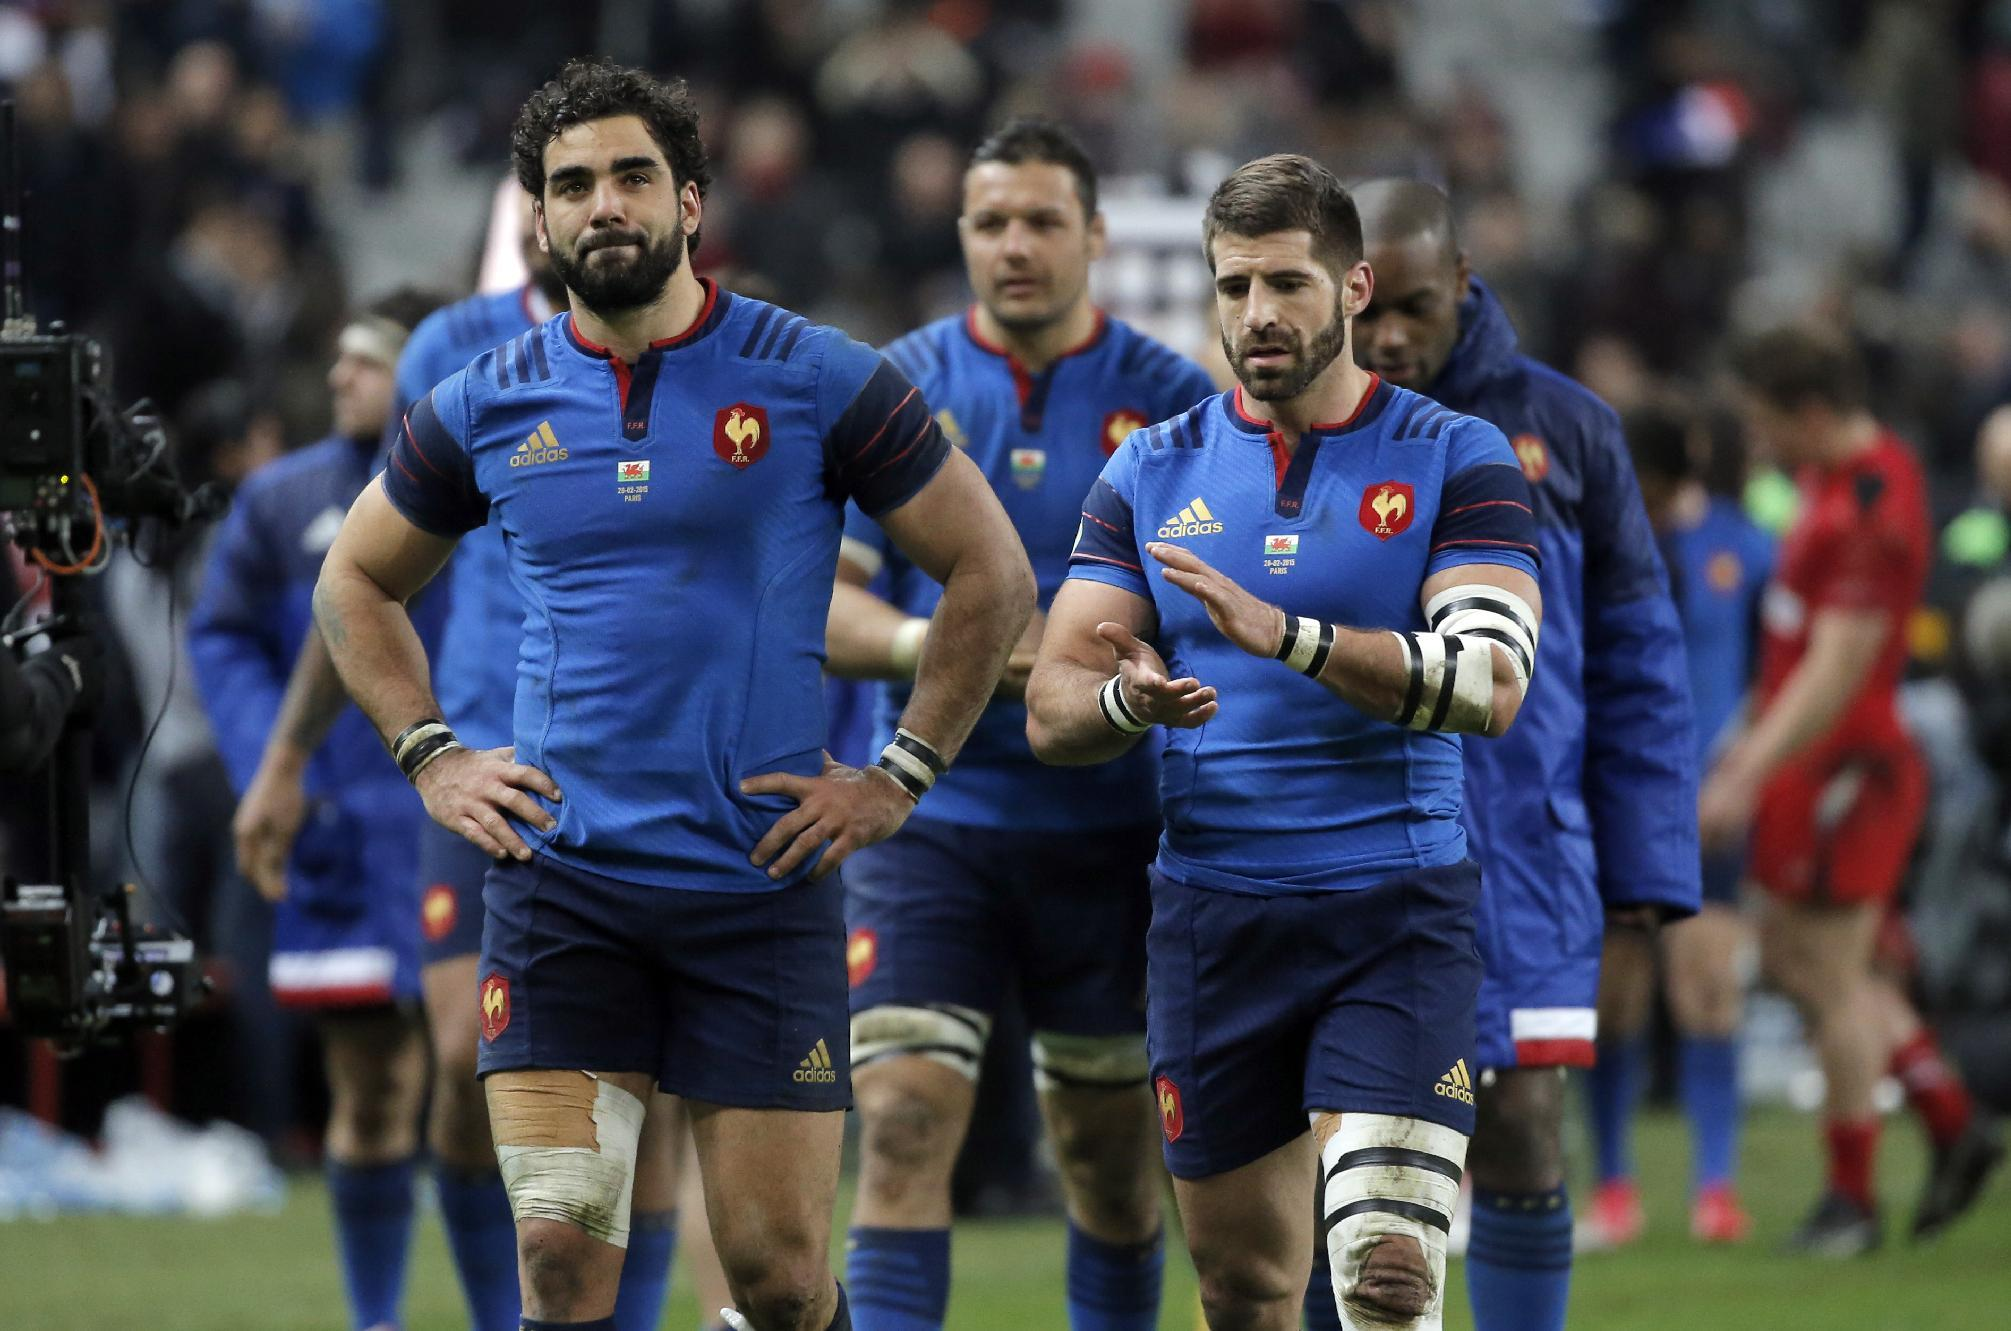 Saint-Andre remains conservative ahead of Italy match